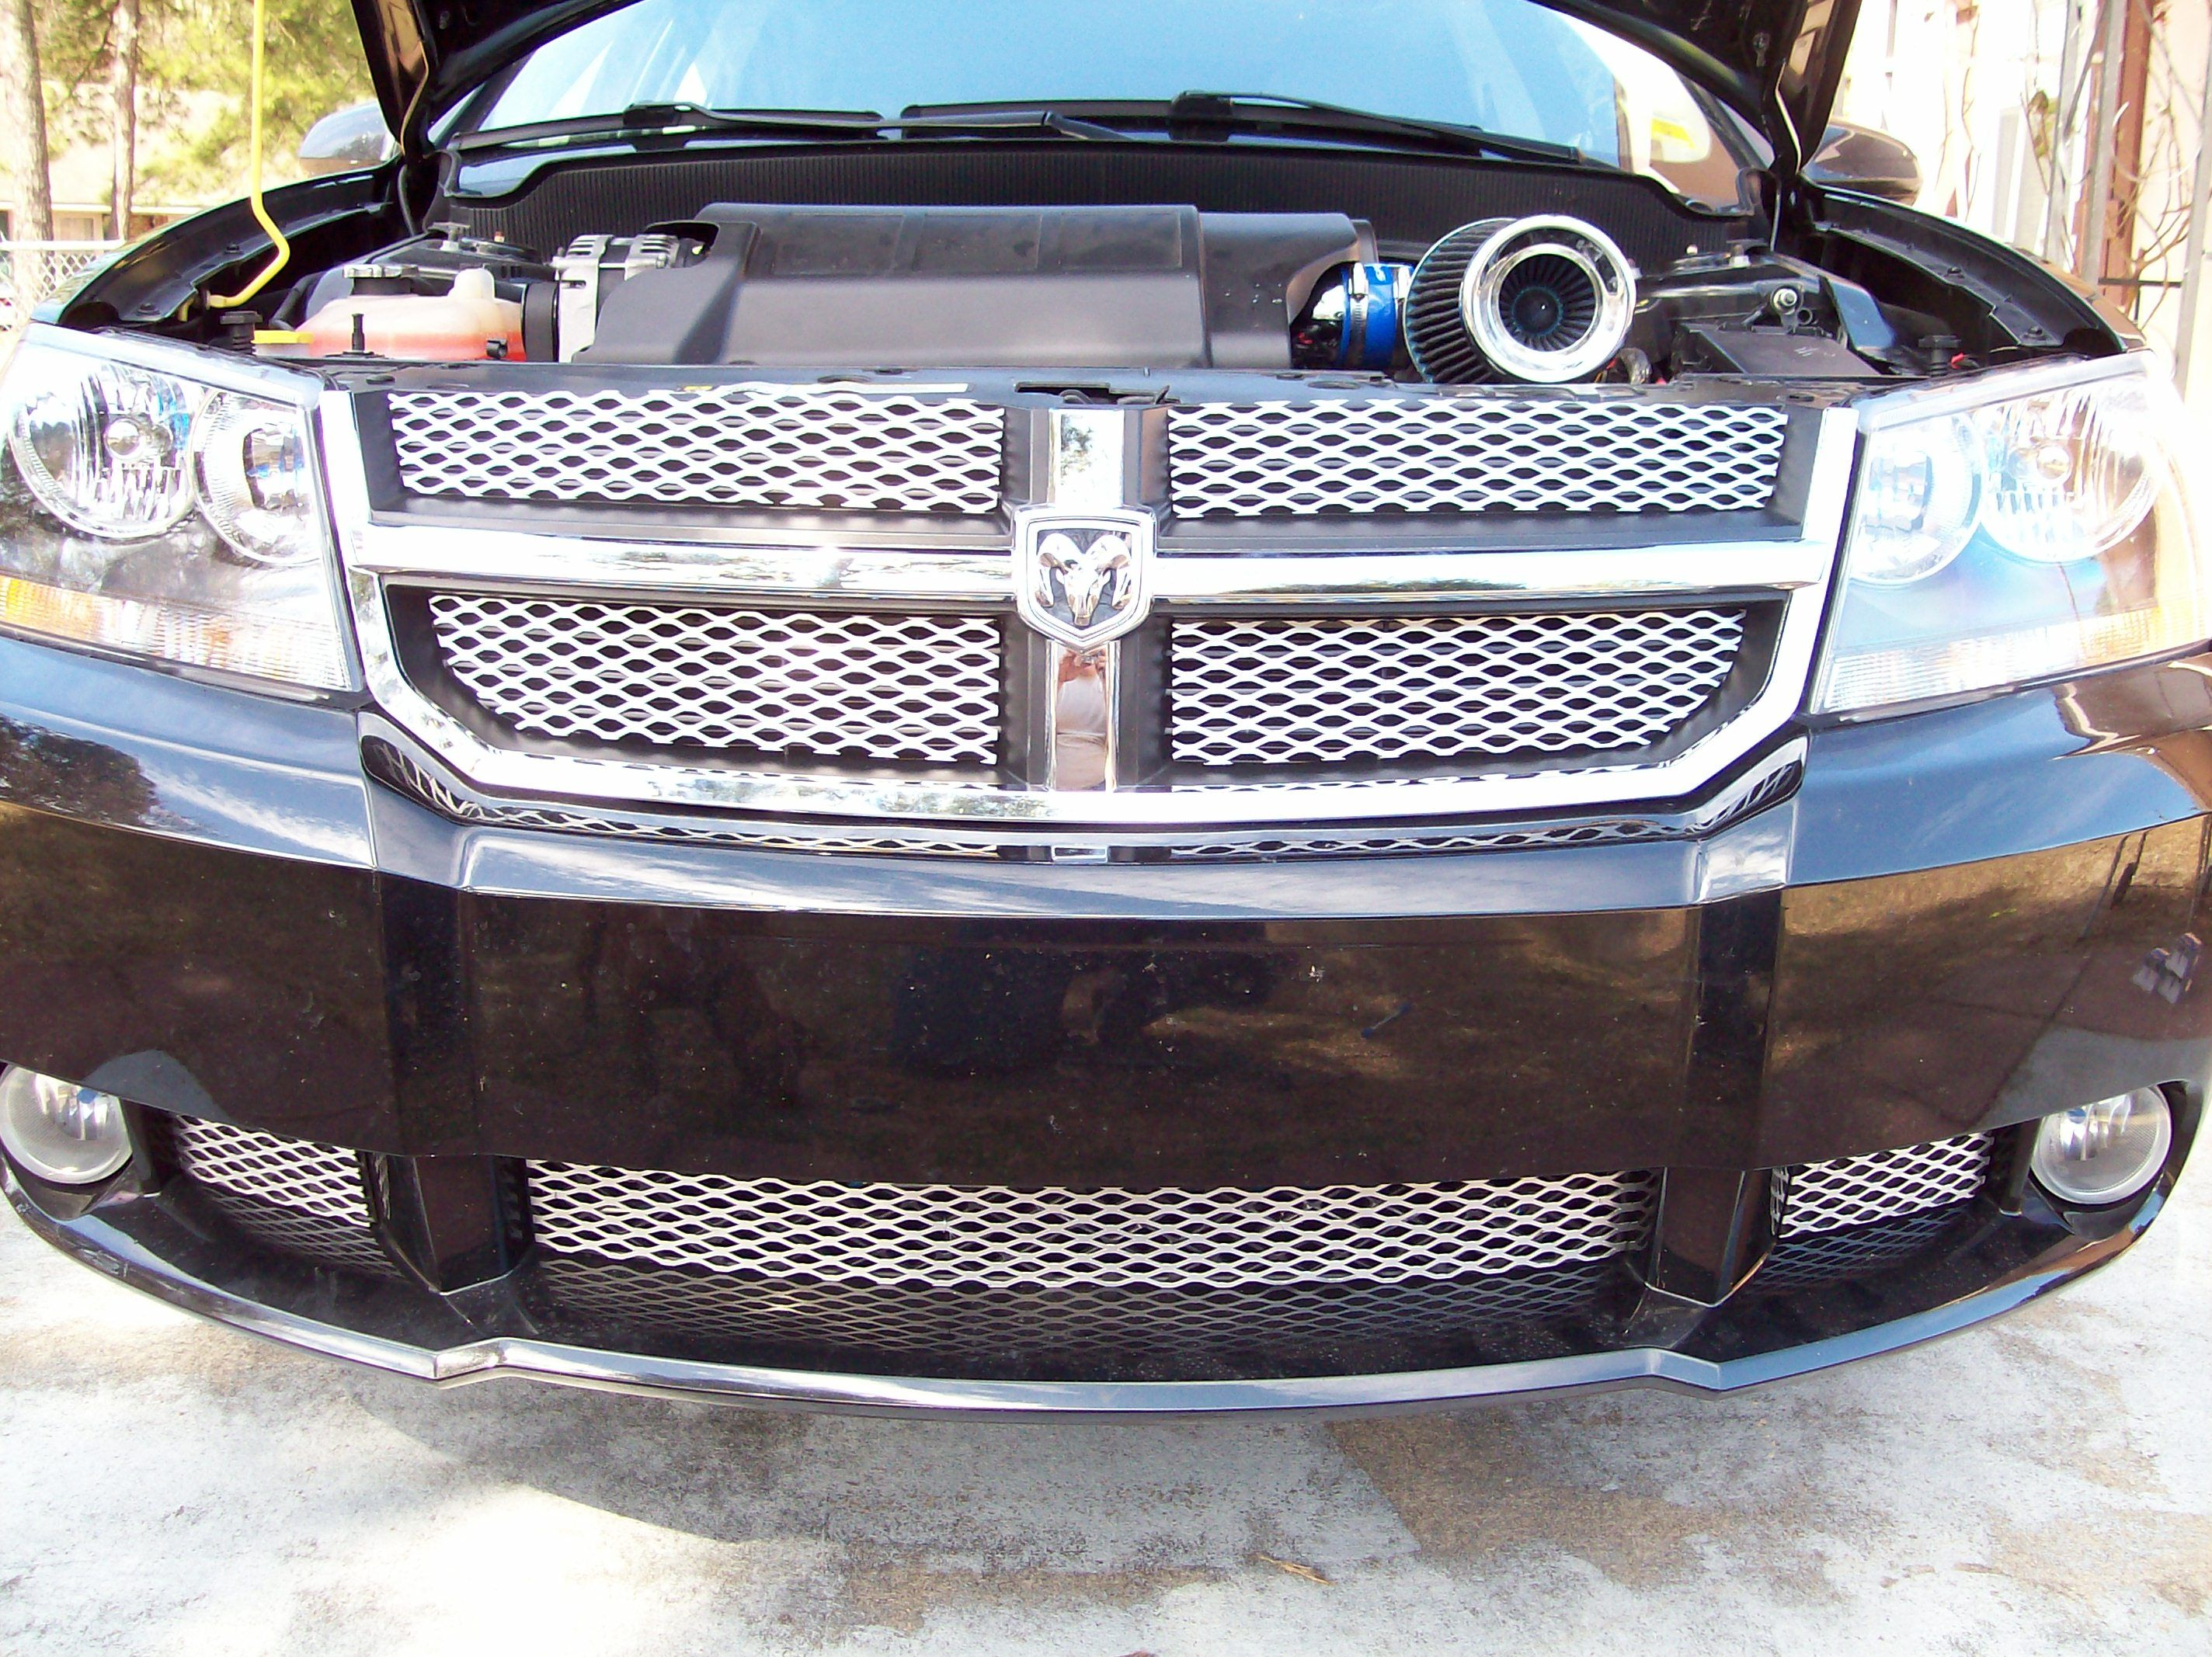 Dodge avenger with expanded aluminum grille overlay